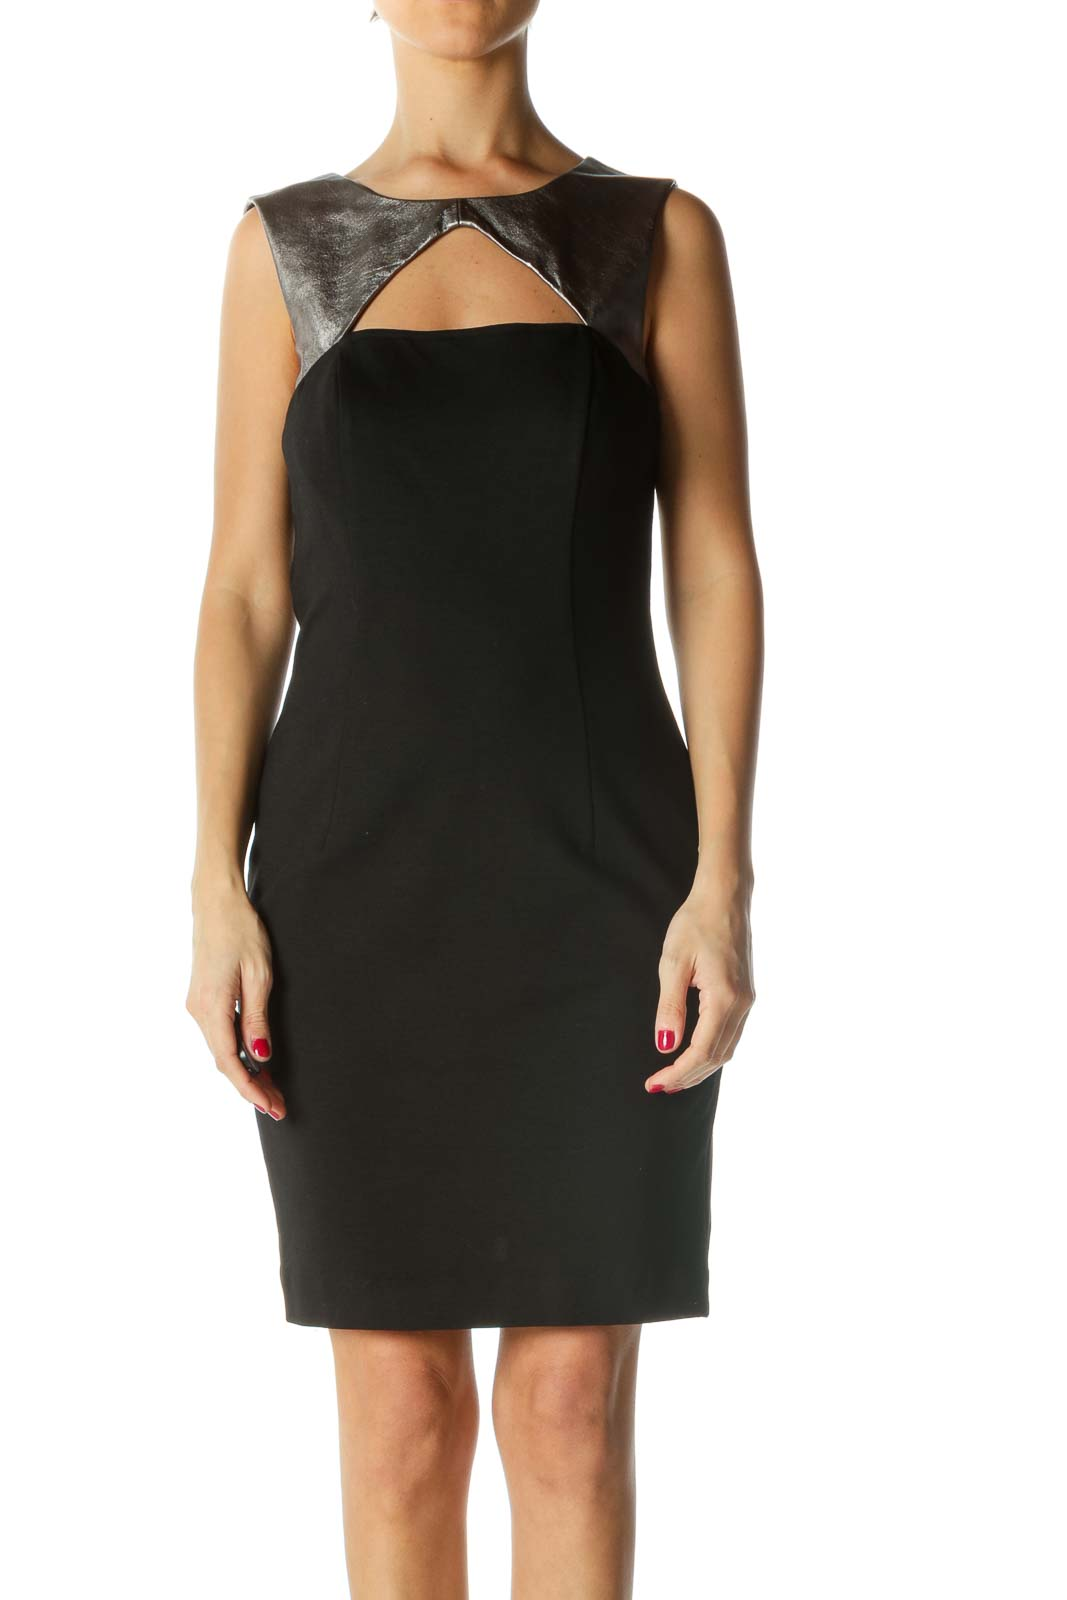 Black and Silver Cut-Out Bodycon Dress